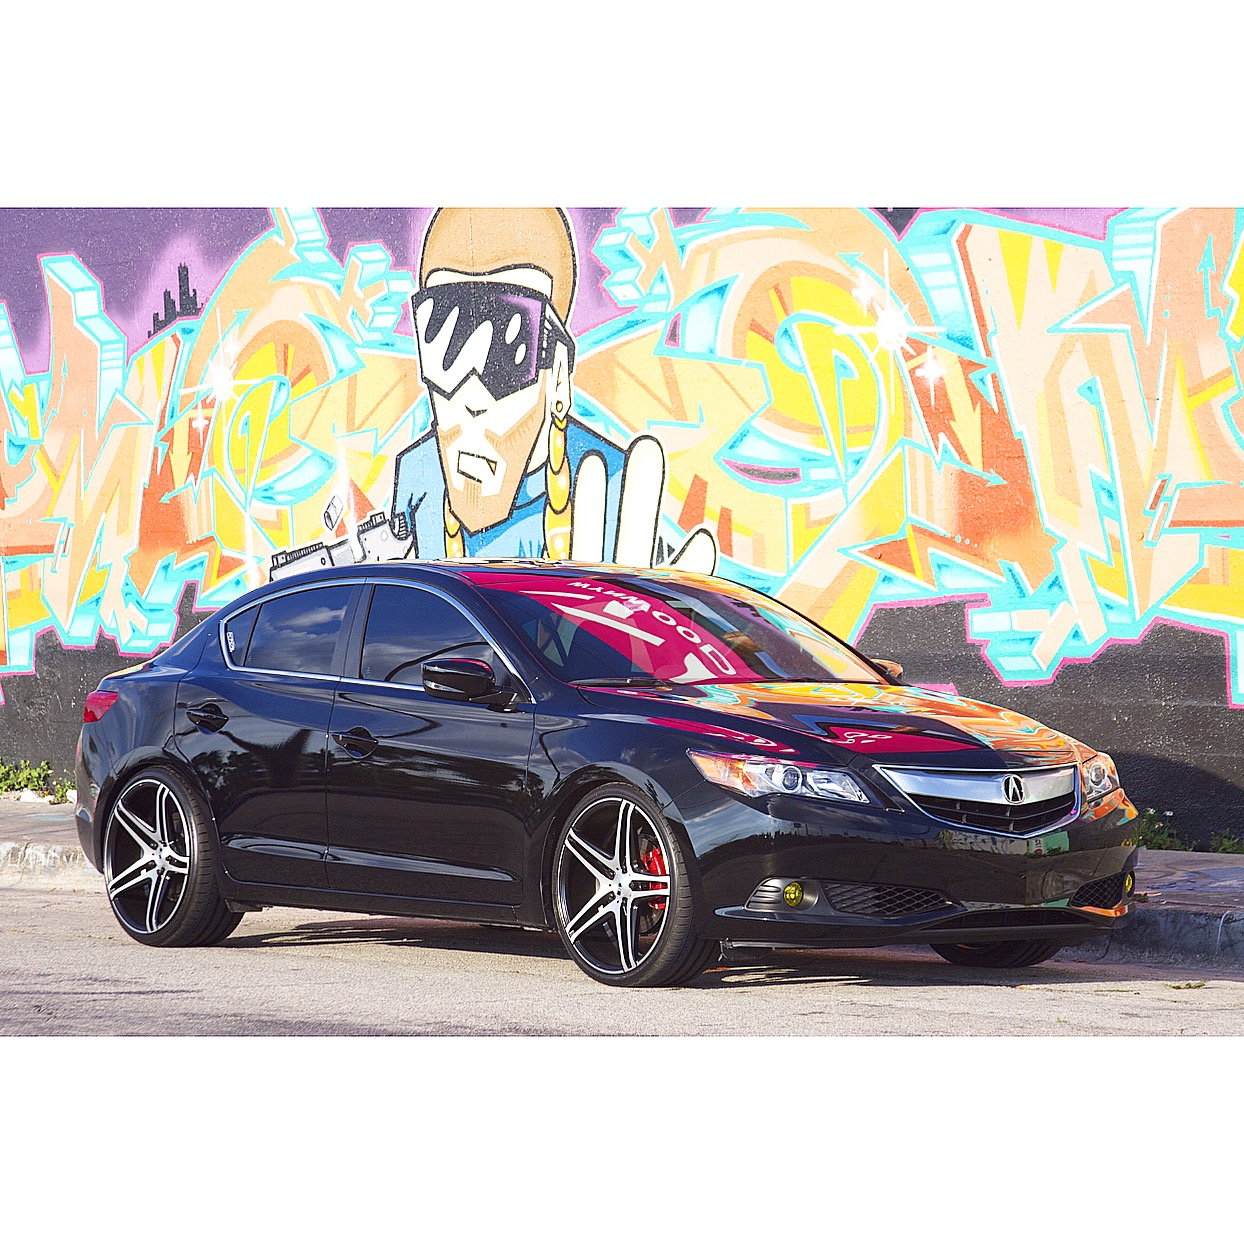 "(2015) 2.4 Acura ILX On 20"" Rims Lowered With D2 Coilovers"